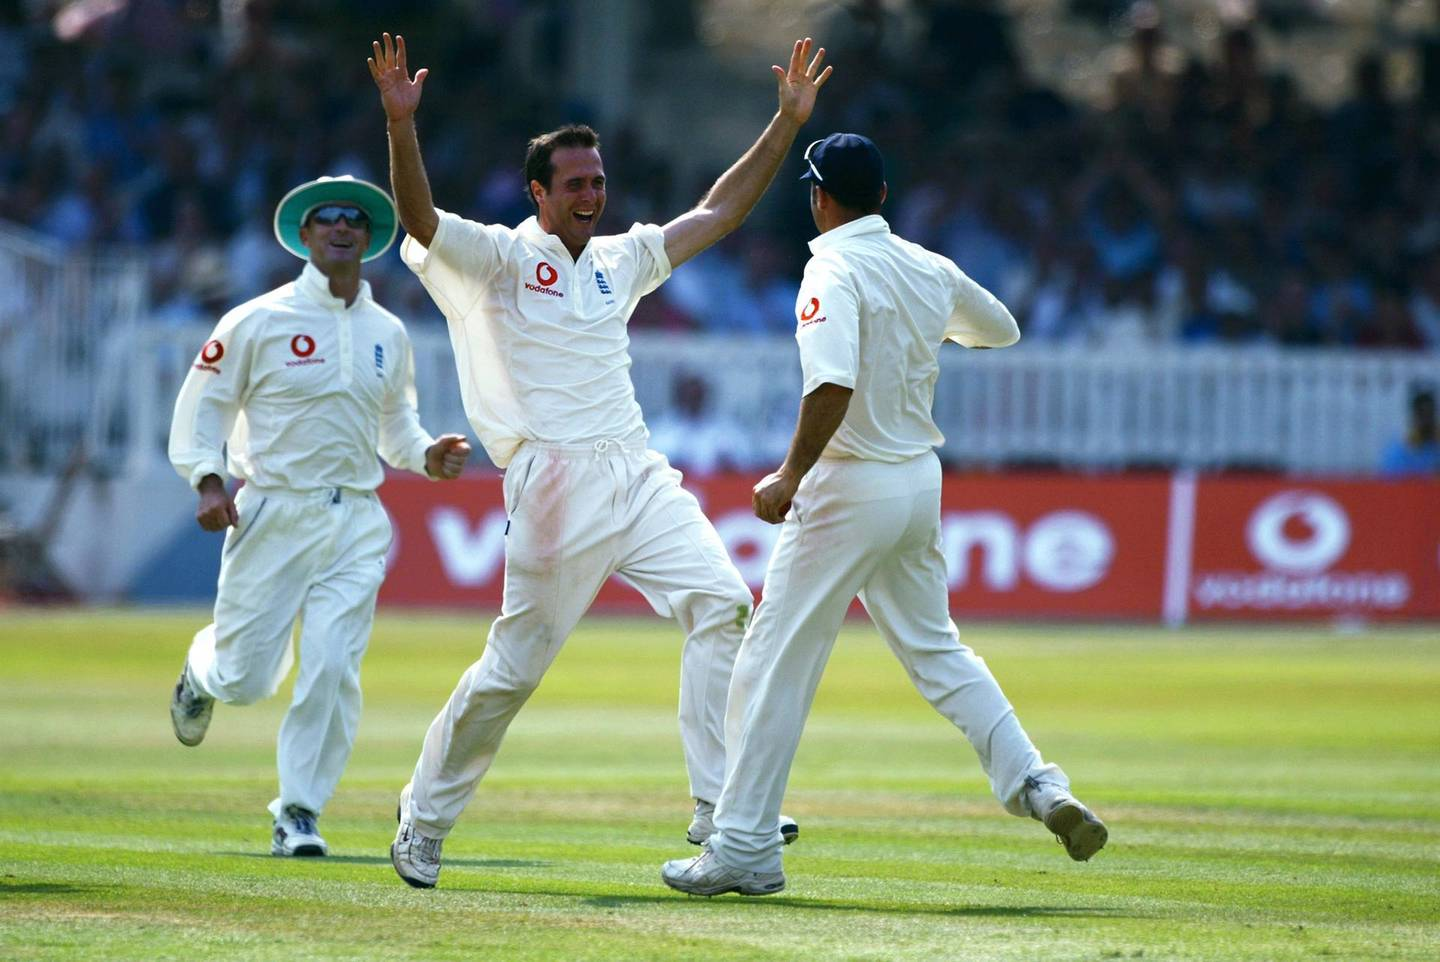 LONDON - JULY 28 :  Michael Vaughan and Nasser Hussain of England celebrate Vaughan's first test wicket during the fourth day of the first npower test match between England and India at Lords in London on July 28, 2002. (Photo By Ben Radford/Getty Images) England won the test match by 170 runs.